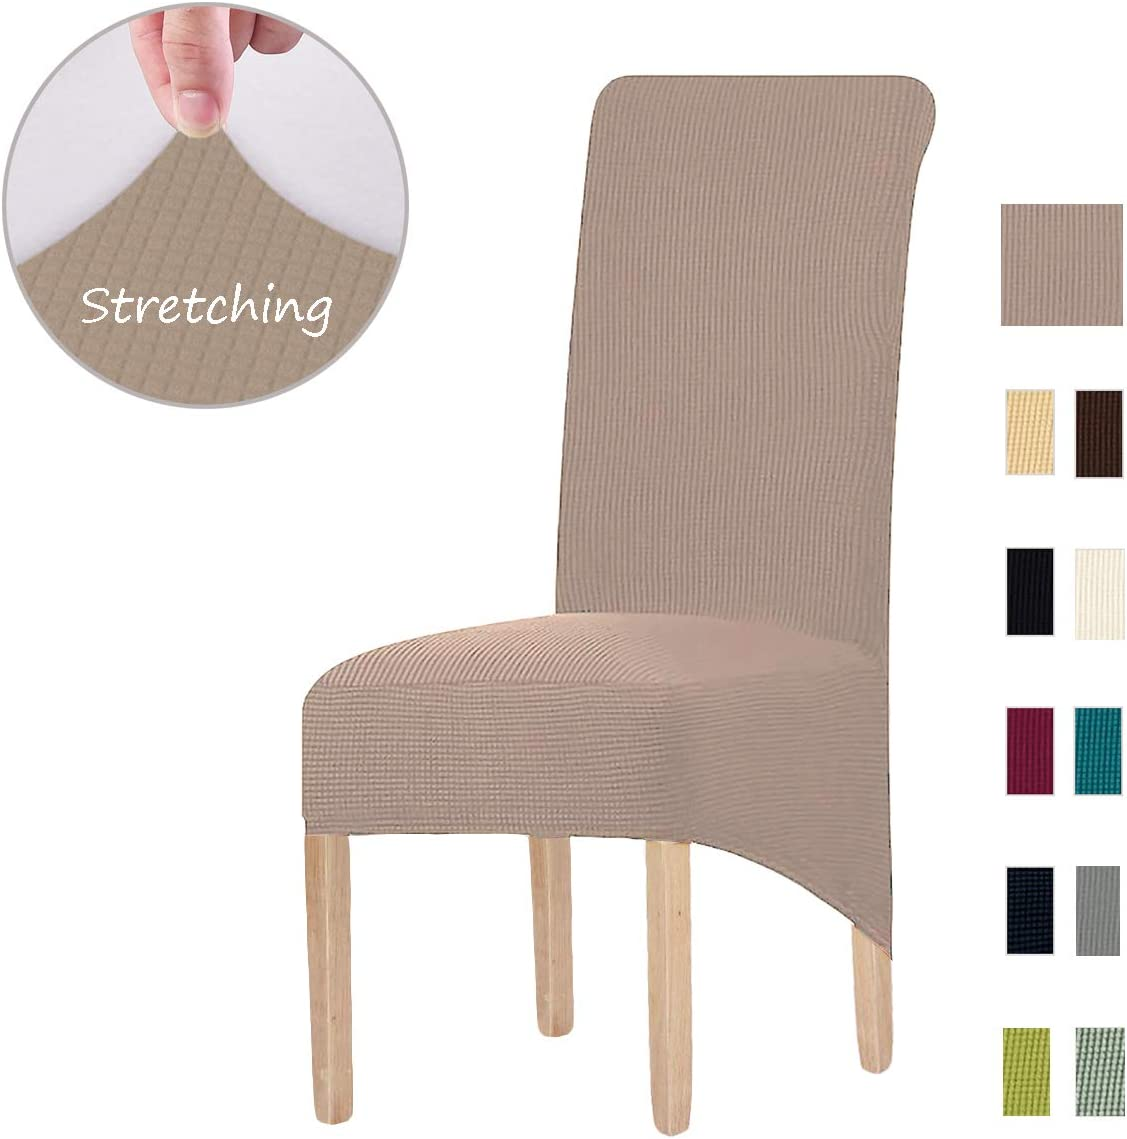 Home Dining Chair Slipcovers Burgundy Red 6 Pcs Packet Stretch Removable Washable Chairs Slipcovers Protector Furniture Cover For Kitchen Banquet Party Wedding Ceremony Set 6 Pack Dining Chairs Covers With 2 Furniture Pads